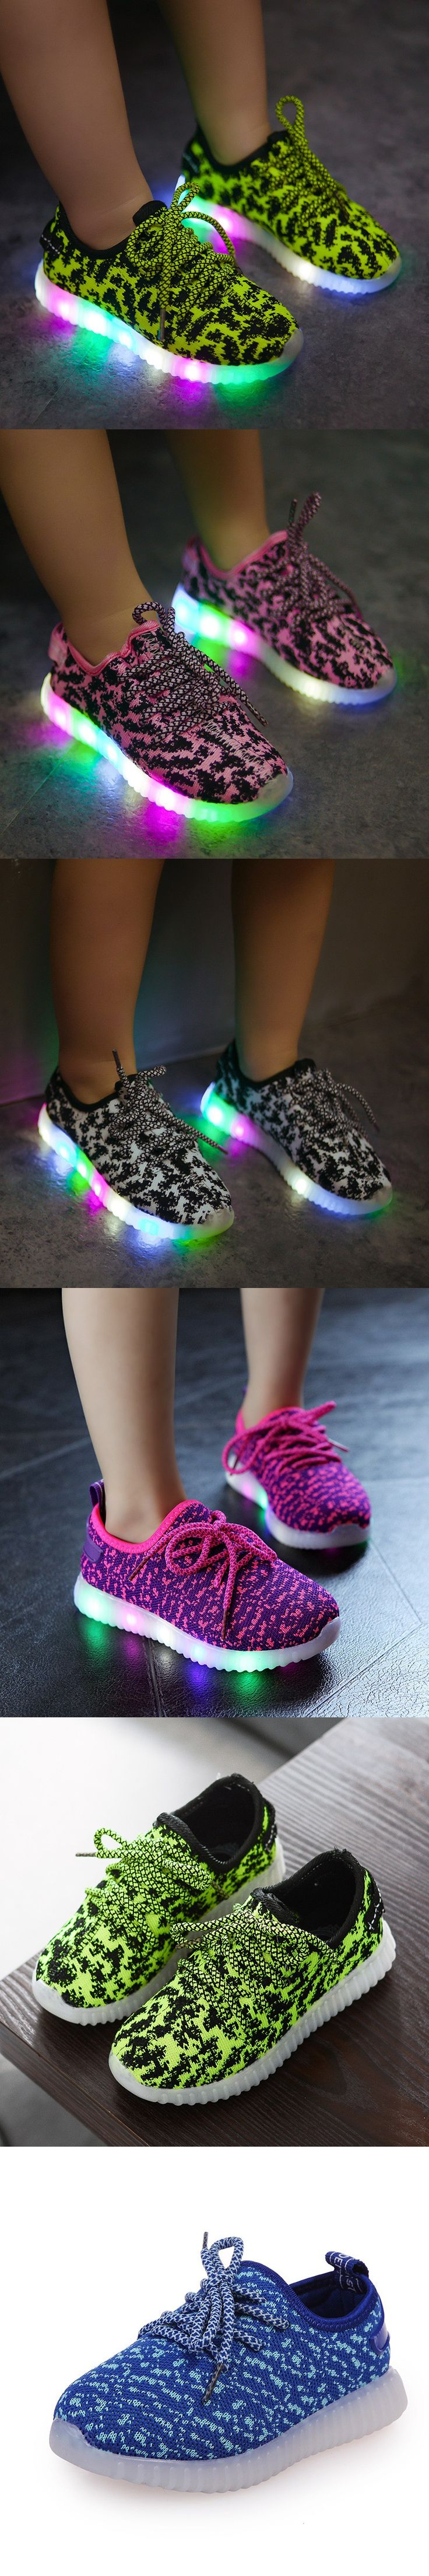 2016 Children USB Rechargeable Led Sneakers Lightweight Kids Led Shoes Fashion Weave Sneaker for Boys and Girls Casual Kid Shoes $25.6